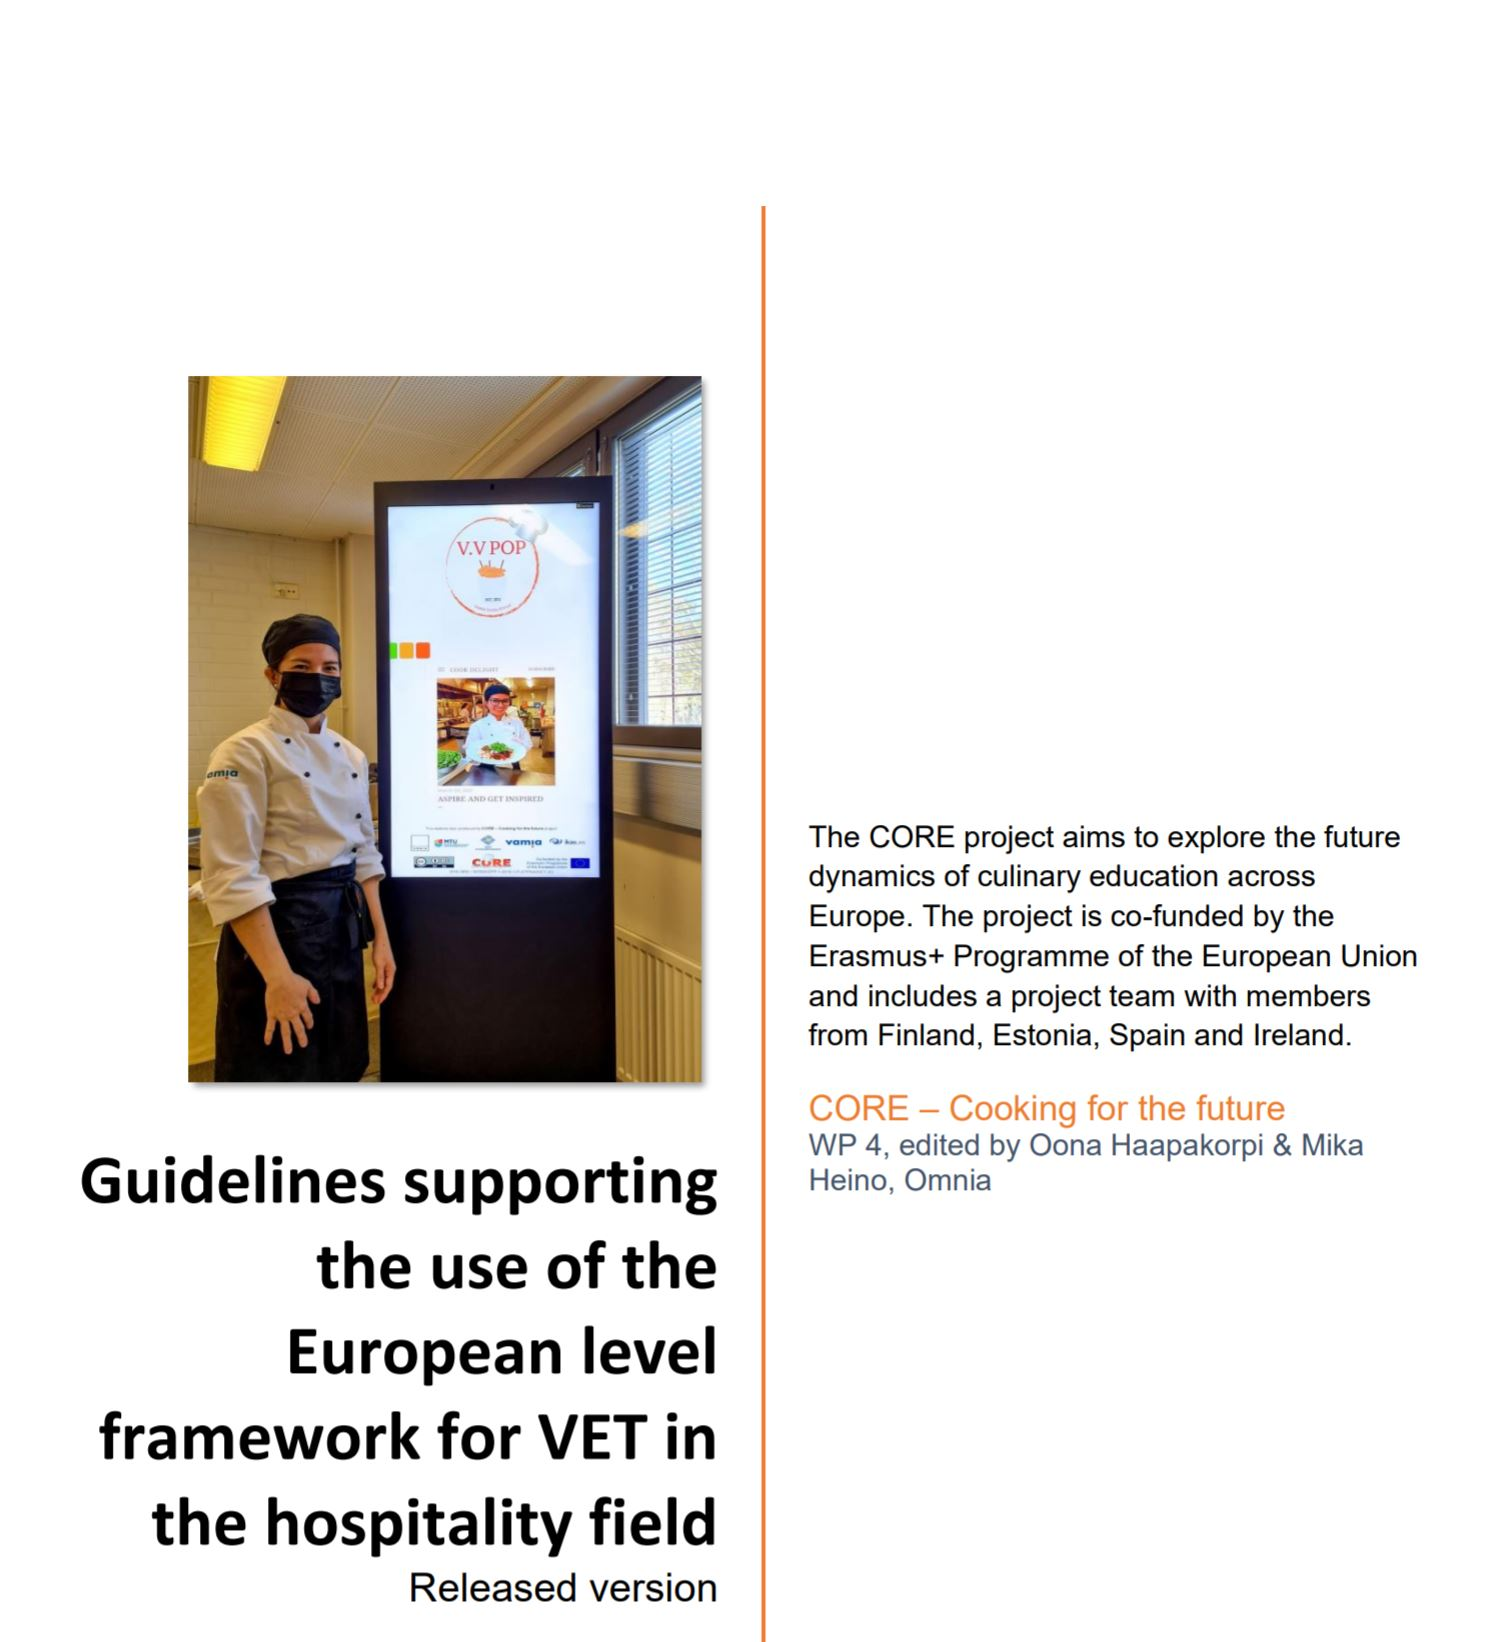 Guidelines supporting the use of the European level framework for VET in the hospitality field